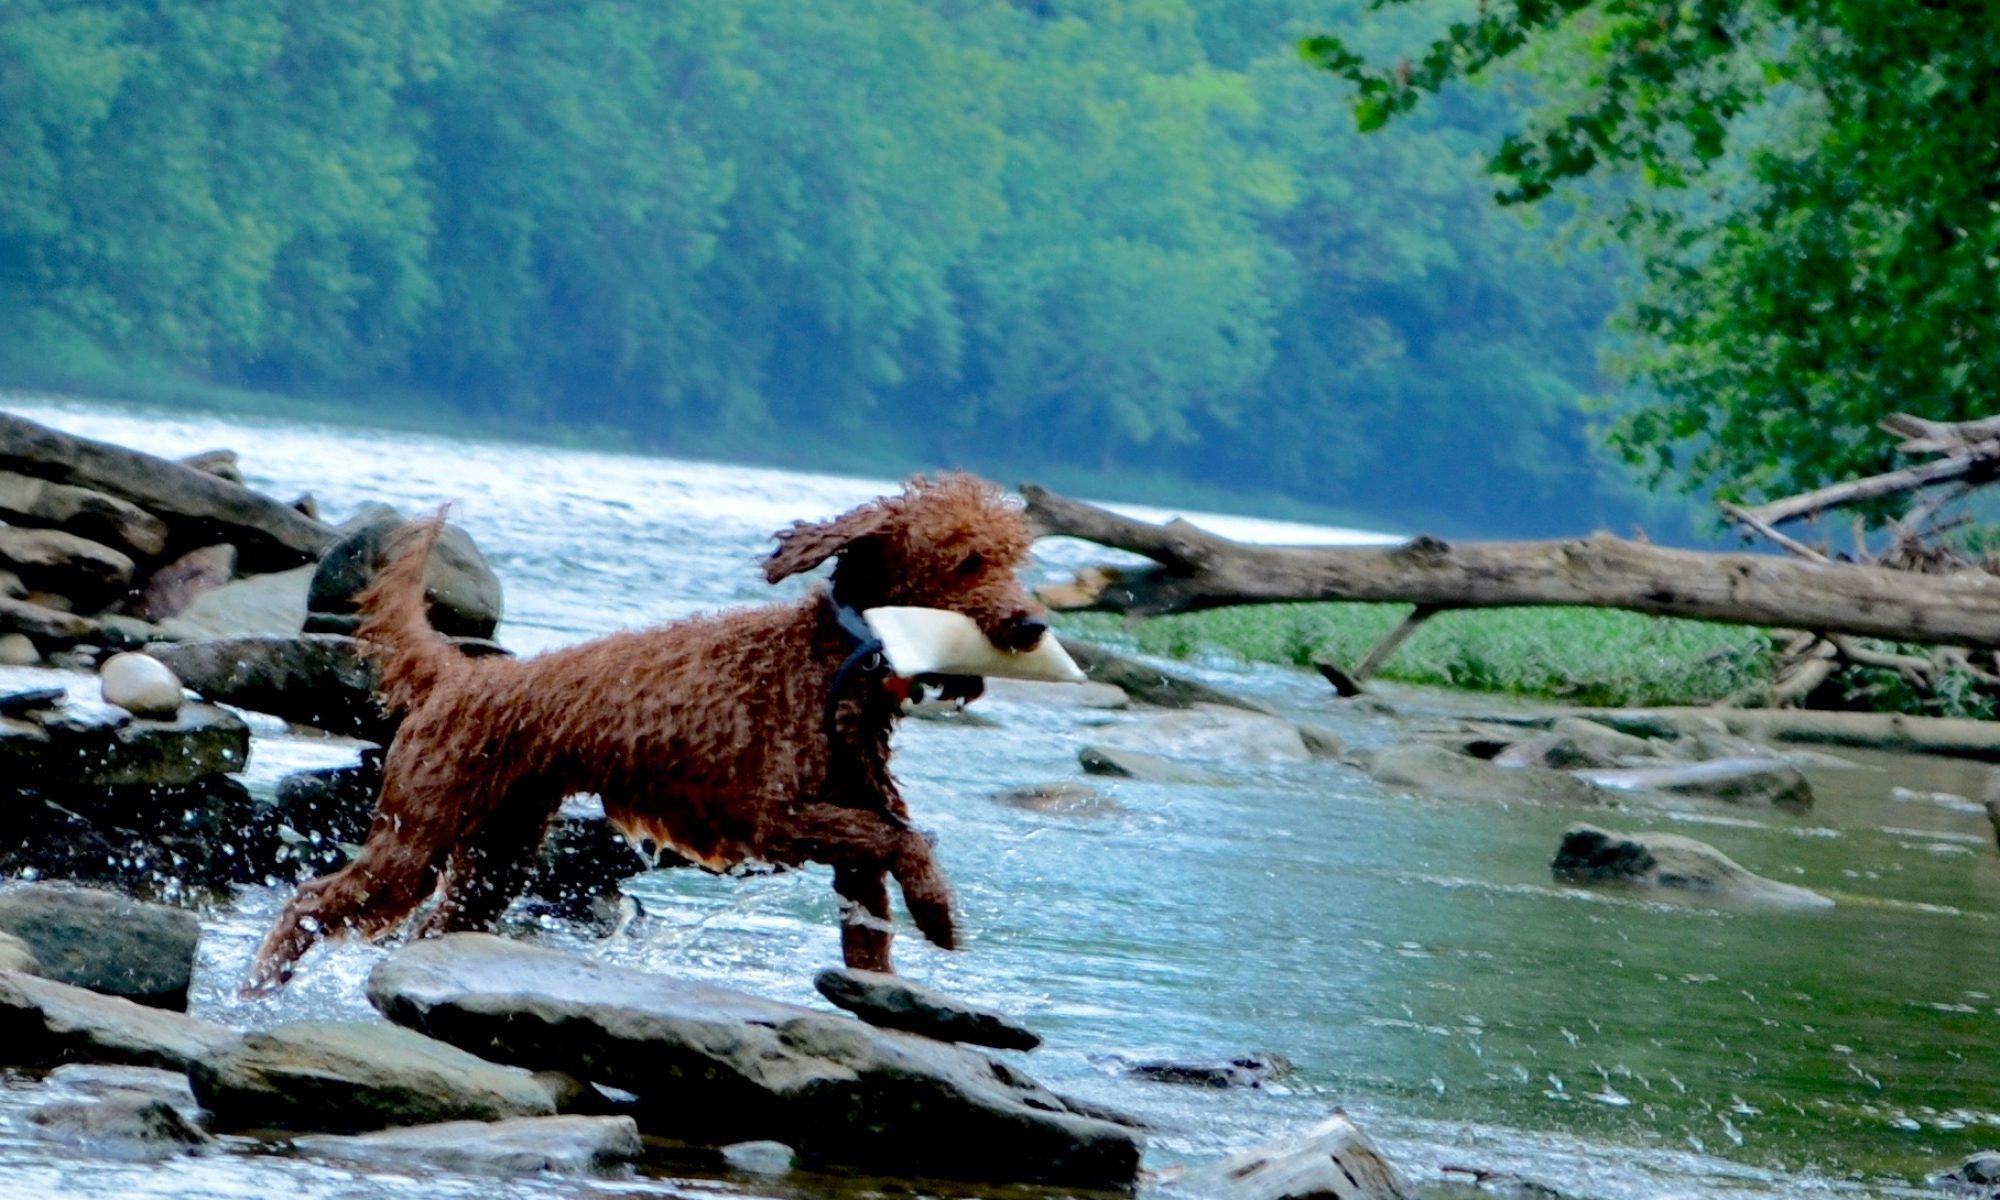 Goldendoodle health archives timberidge goldendoodles timberidge goldendoodles nvjuhfo Images